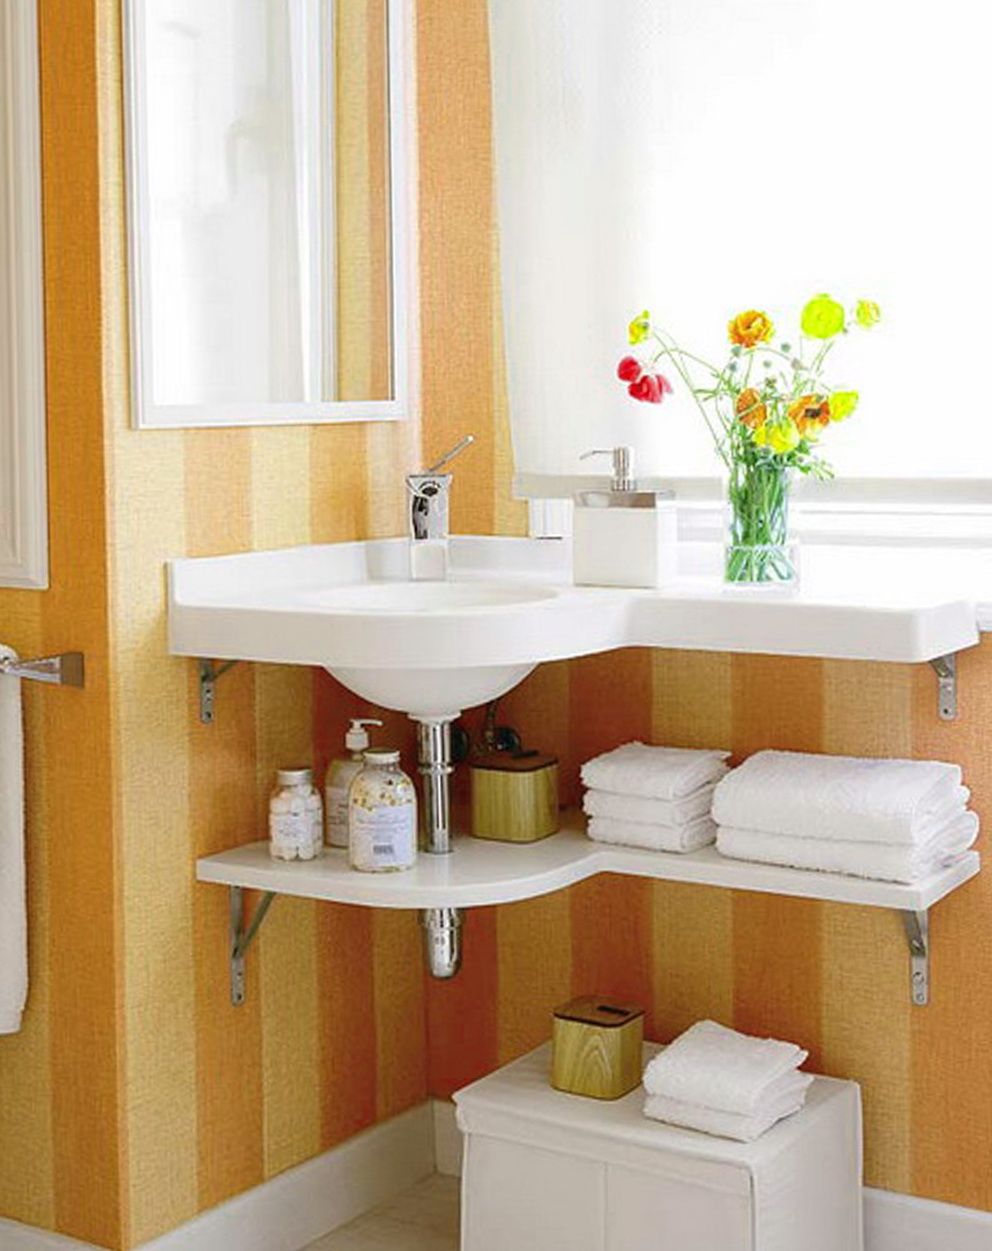 Small Bathroom Sinks With Storage